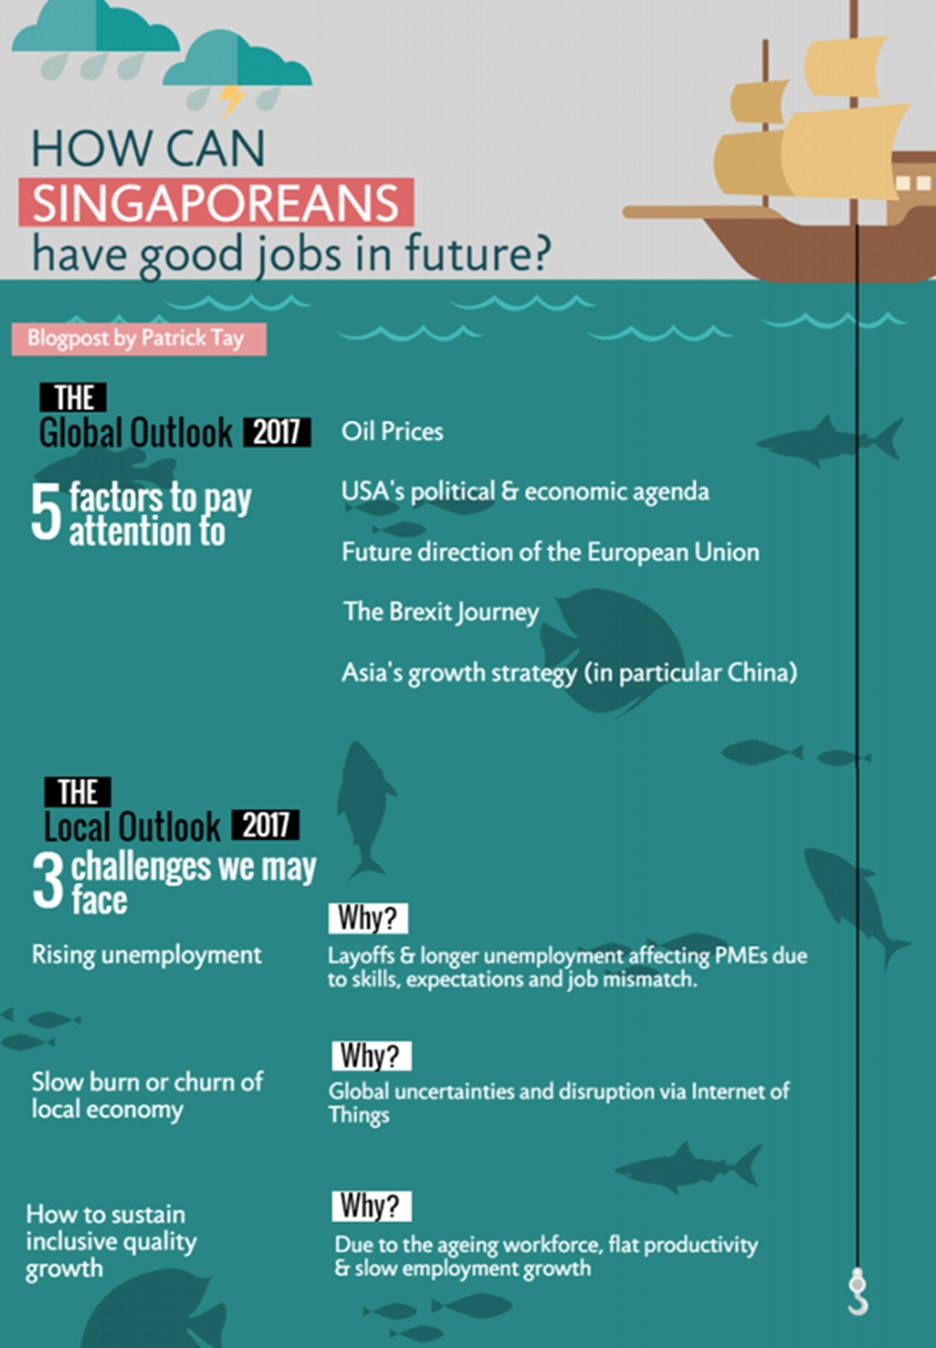 going digital 5 ways to help singaporeans get future ready hr 5 threats to singapore jobs and economy